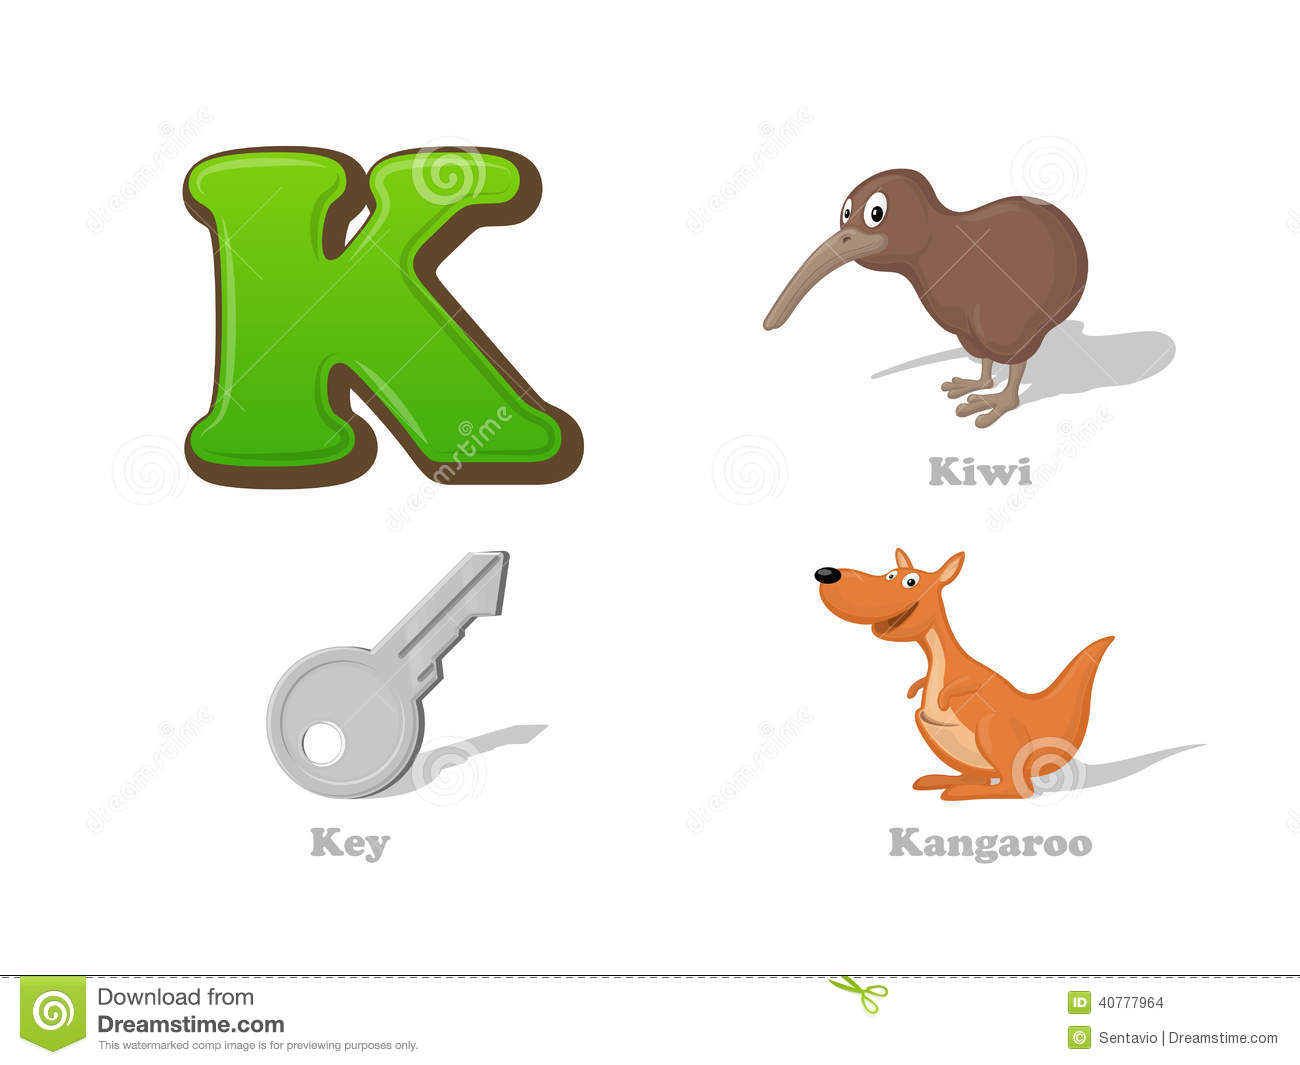 Stock Images Abc Letter K Funny Kid Icons Set Kiwi Bird Key Kangaroo Full English Alphabet Children Education Collection Image40777964 on Letter Q Queen